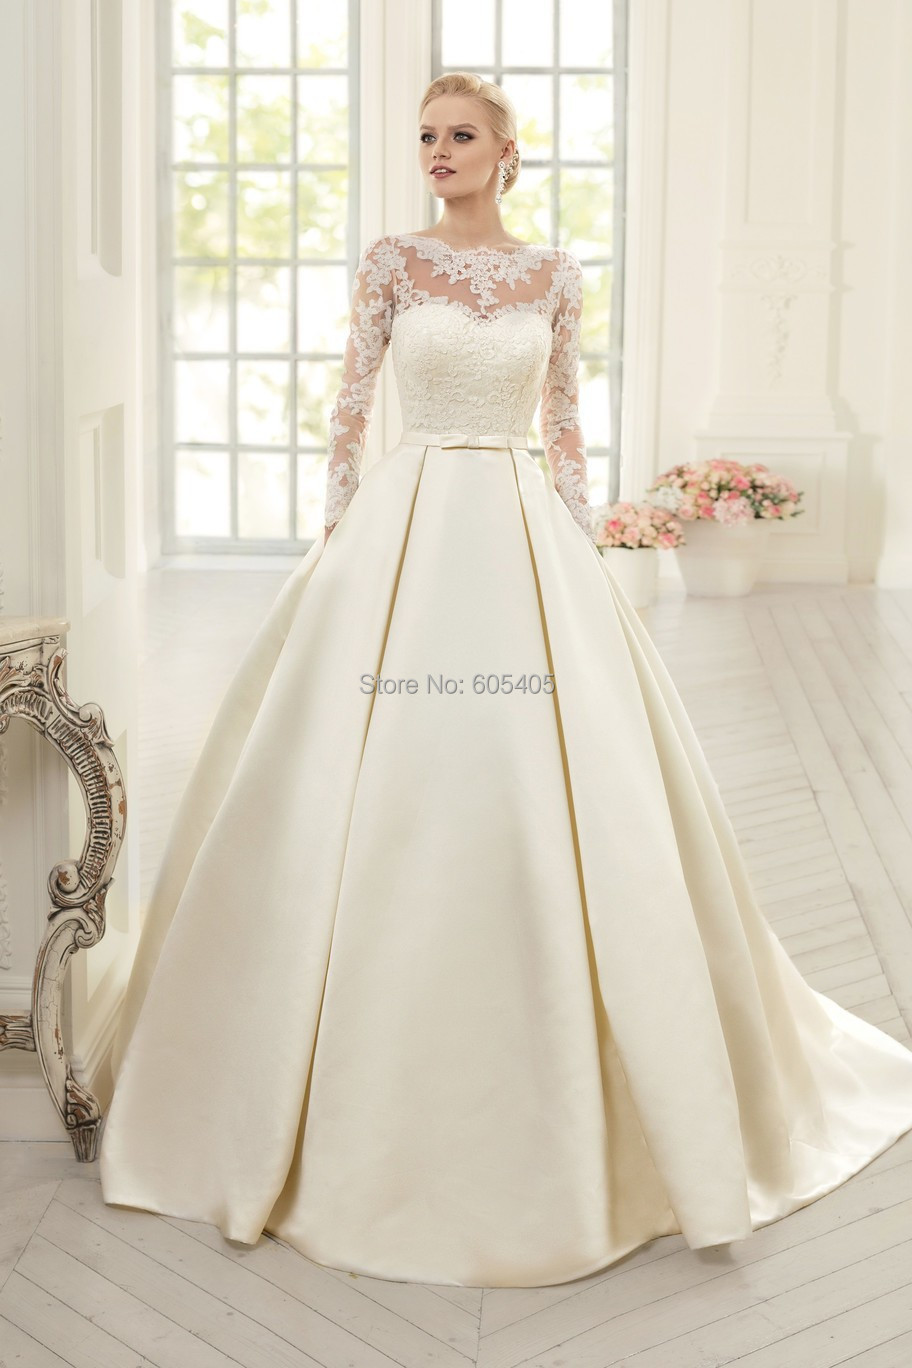 elegant simple long sleeve wedding dresses with lace 2015